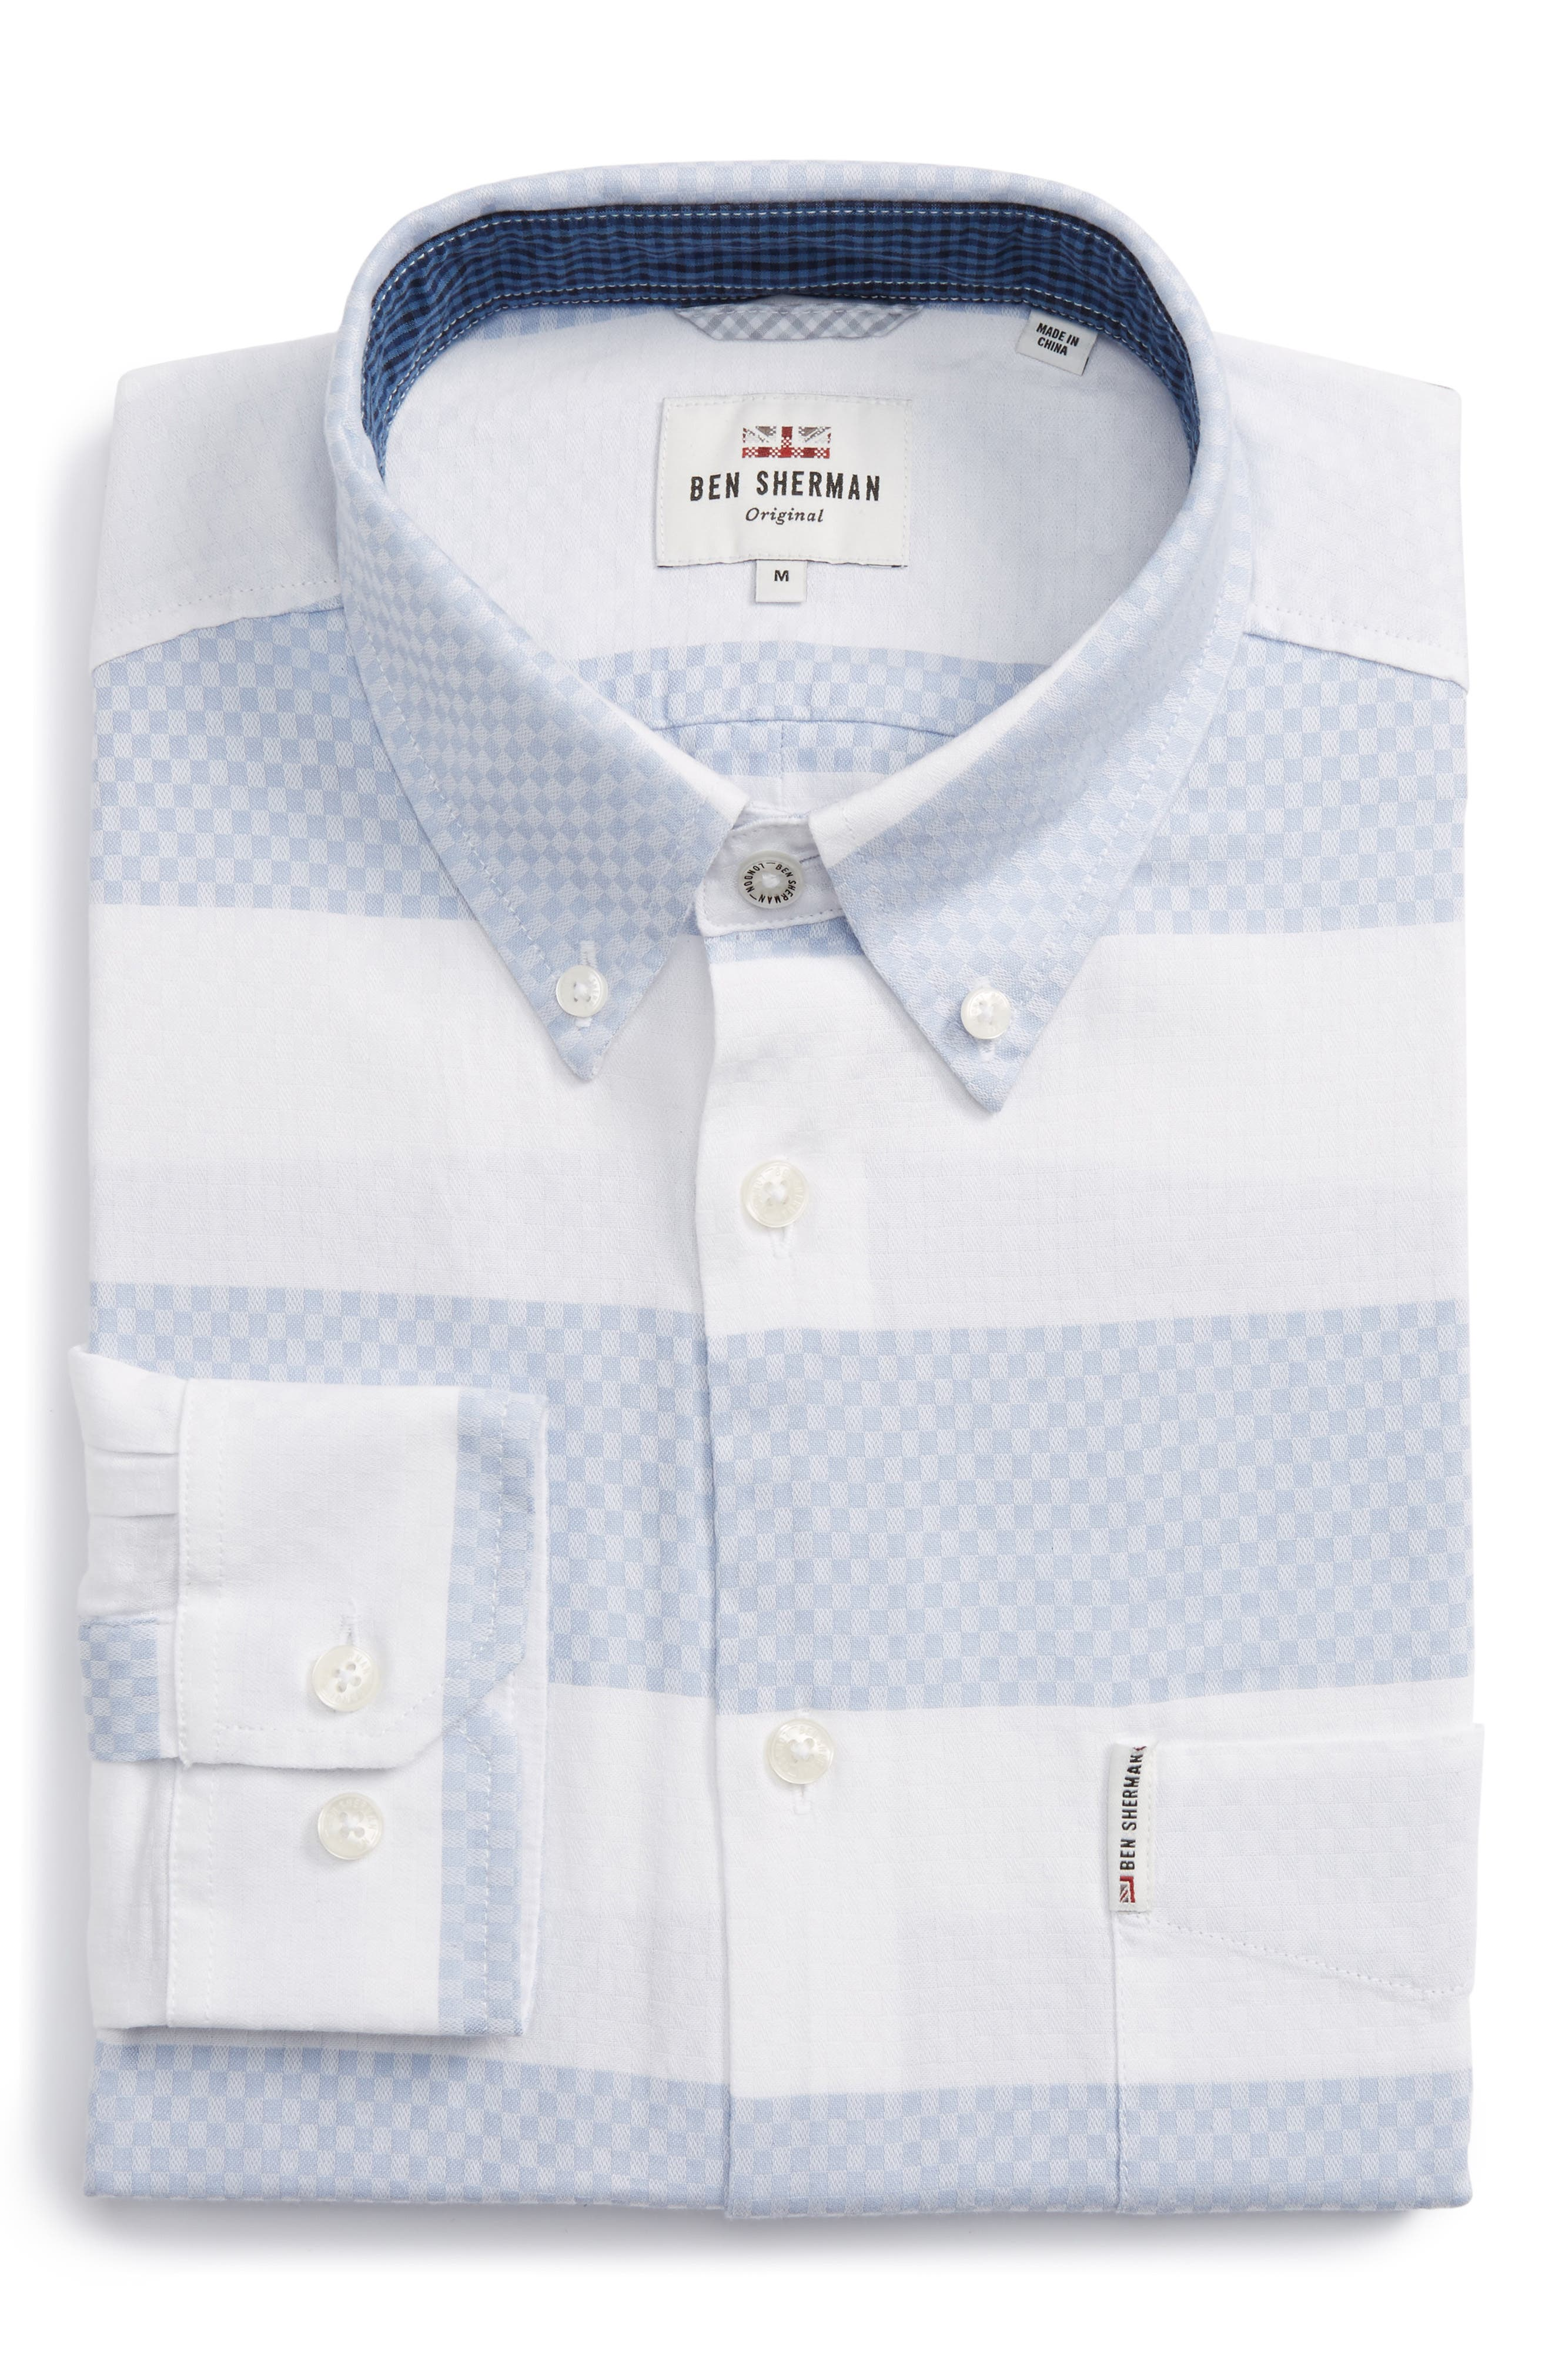 Ben Sherman Dobby Gingham Stripes Shirt